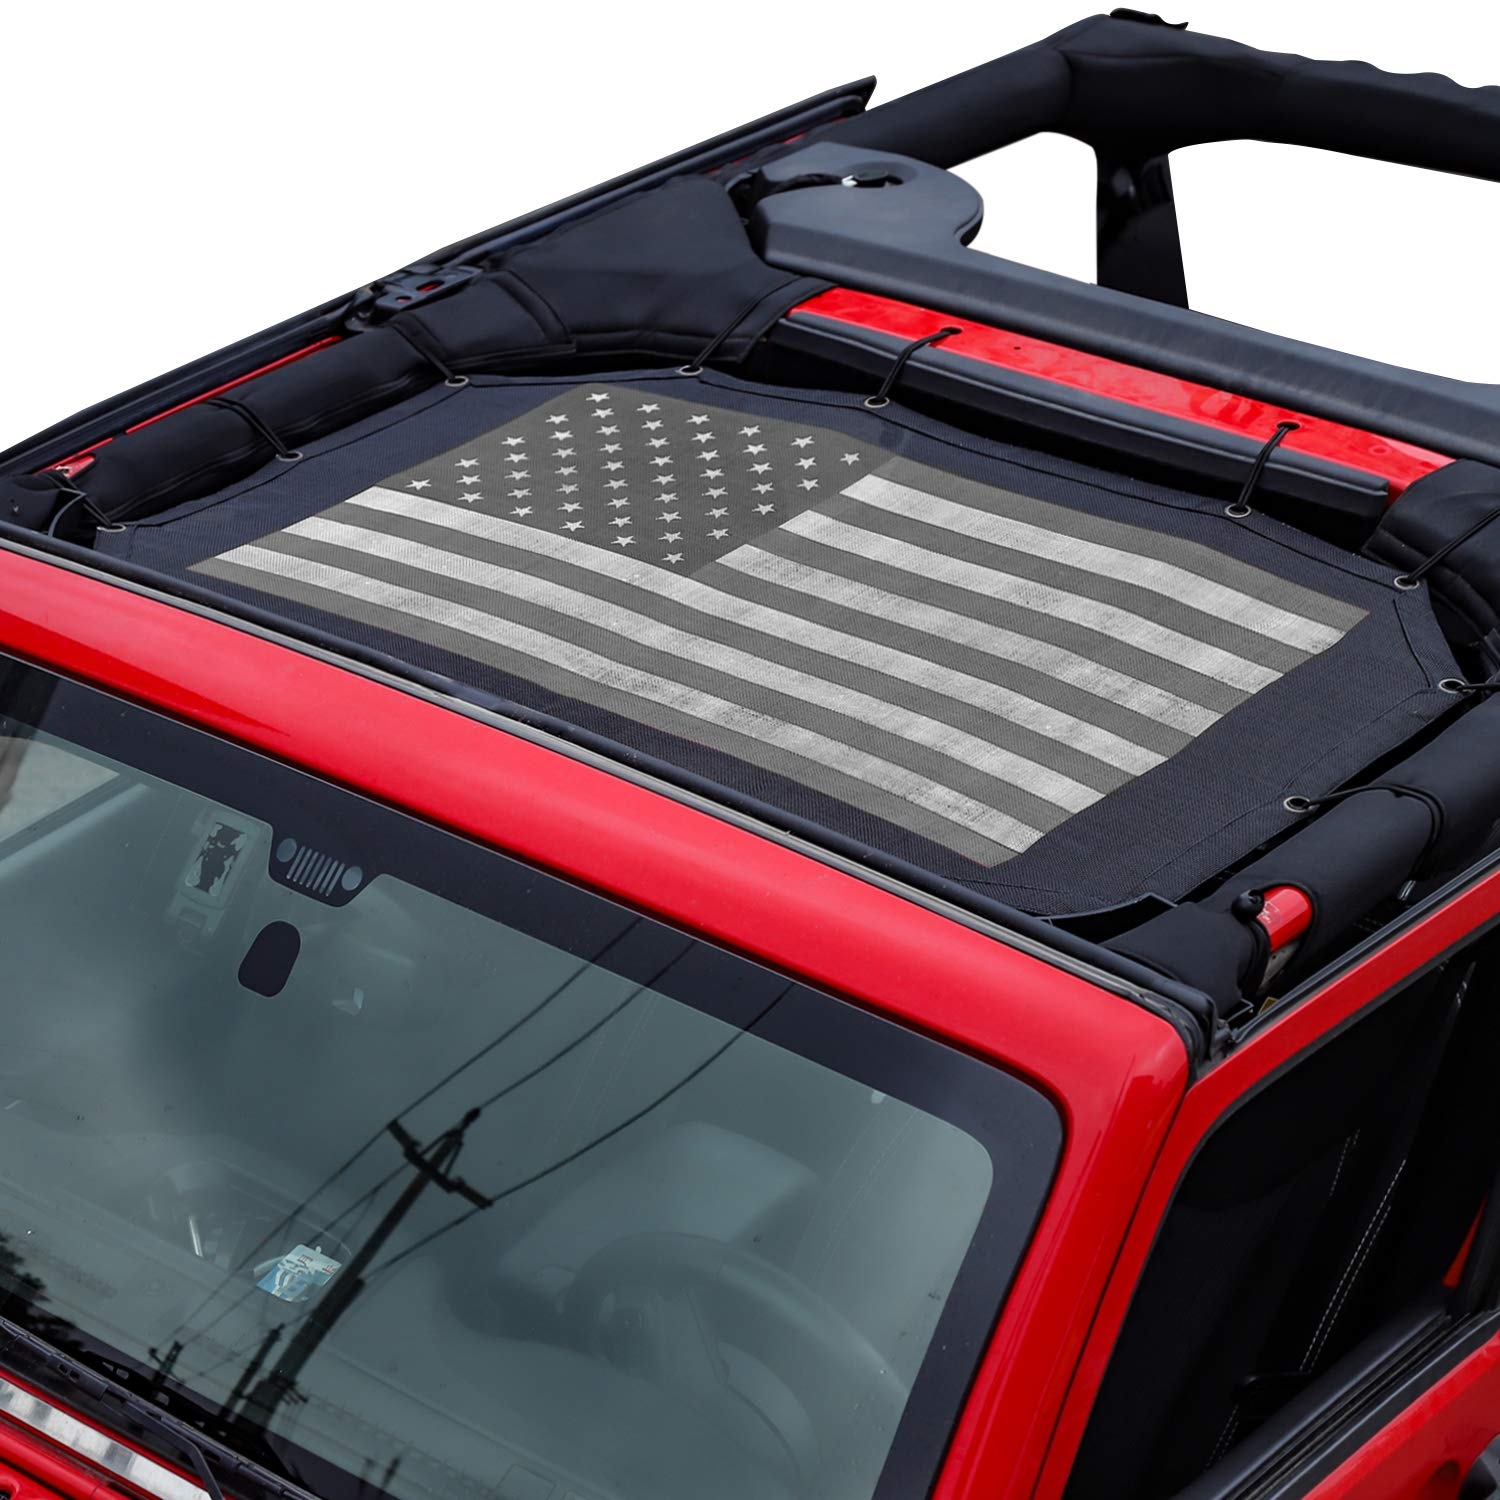 JeCar 2018 Jeep Wrangler Lights Cover Tail Light Guard for 2018 jeep Rubicon Sahara Sport JL(Pawprint style 1 Pair)